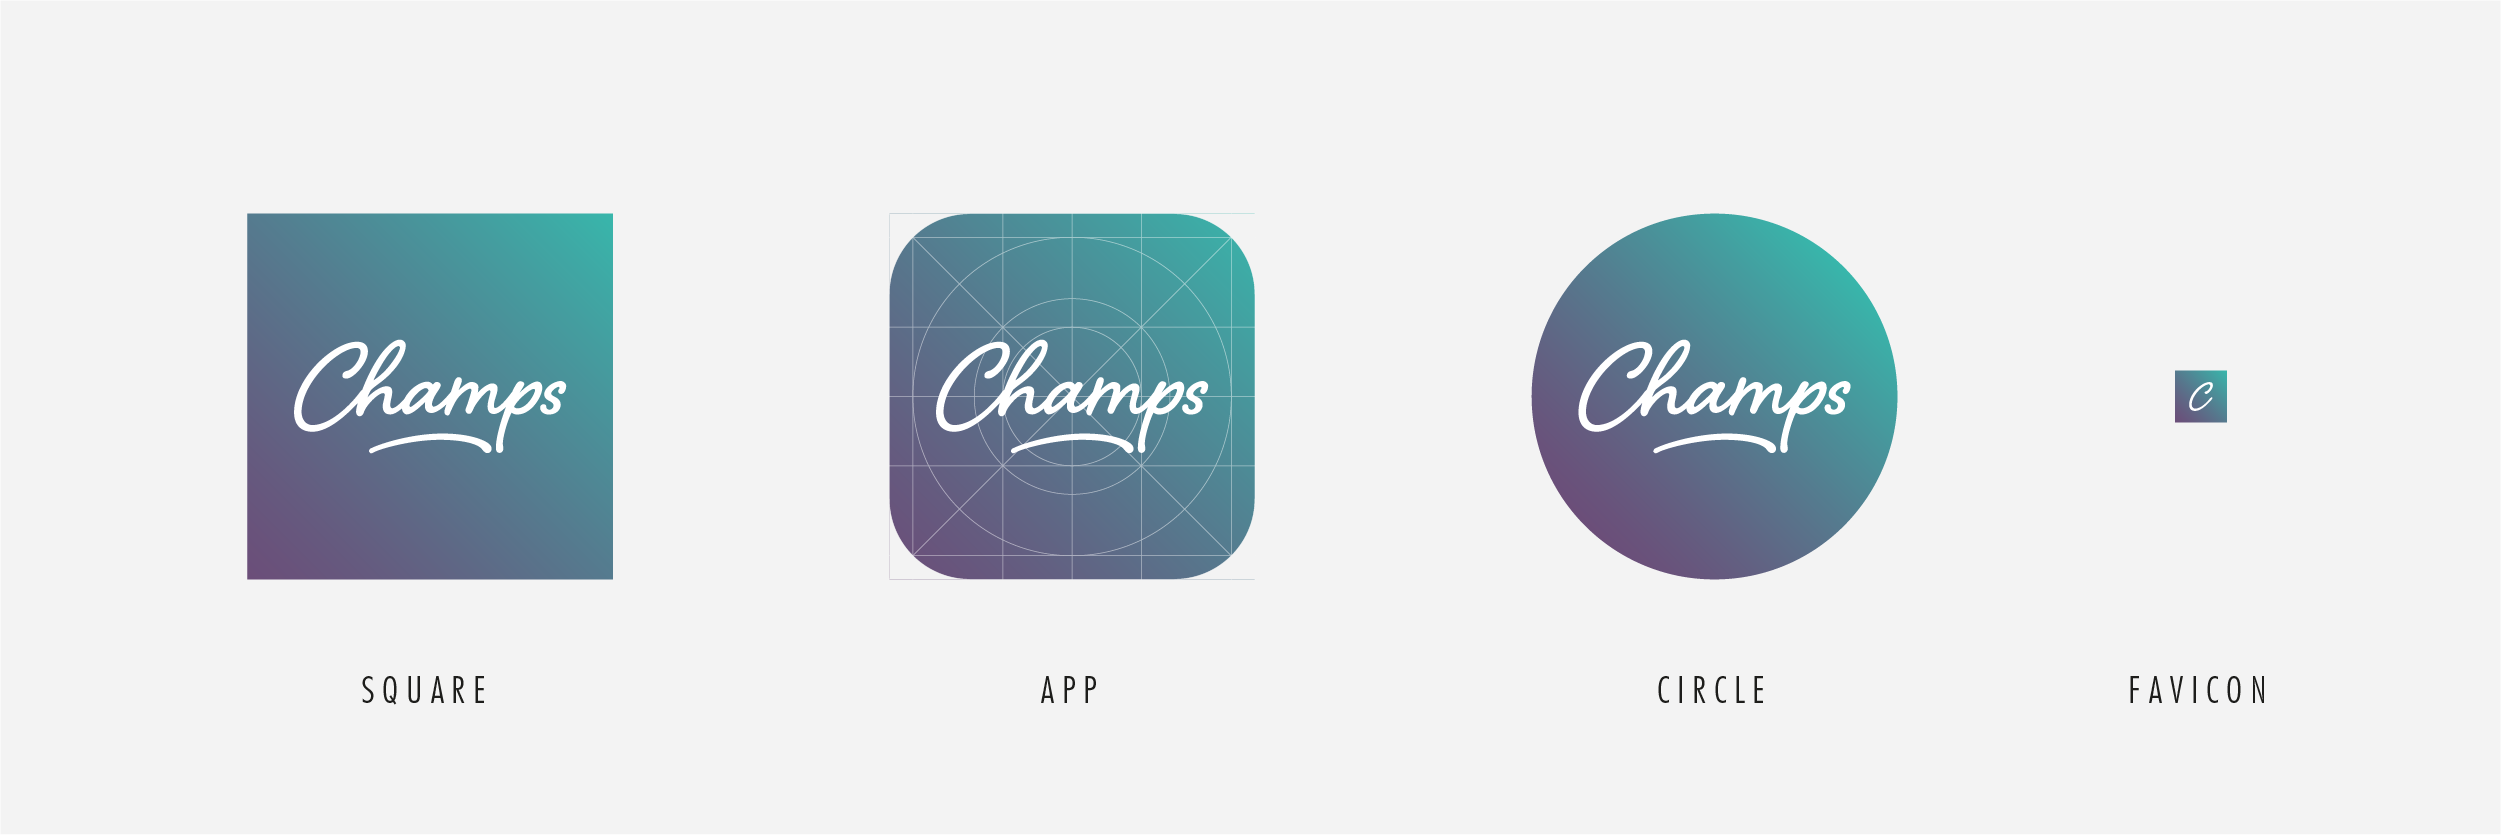 Champs Icons